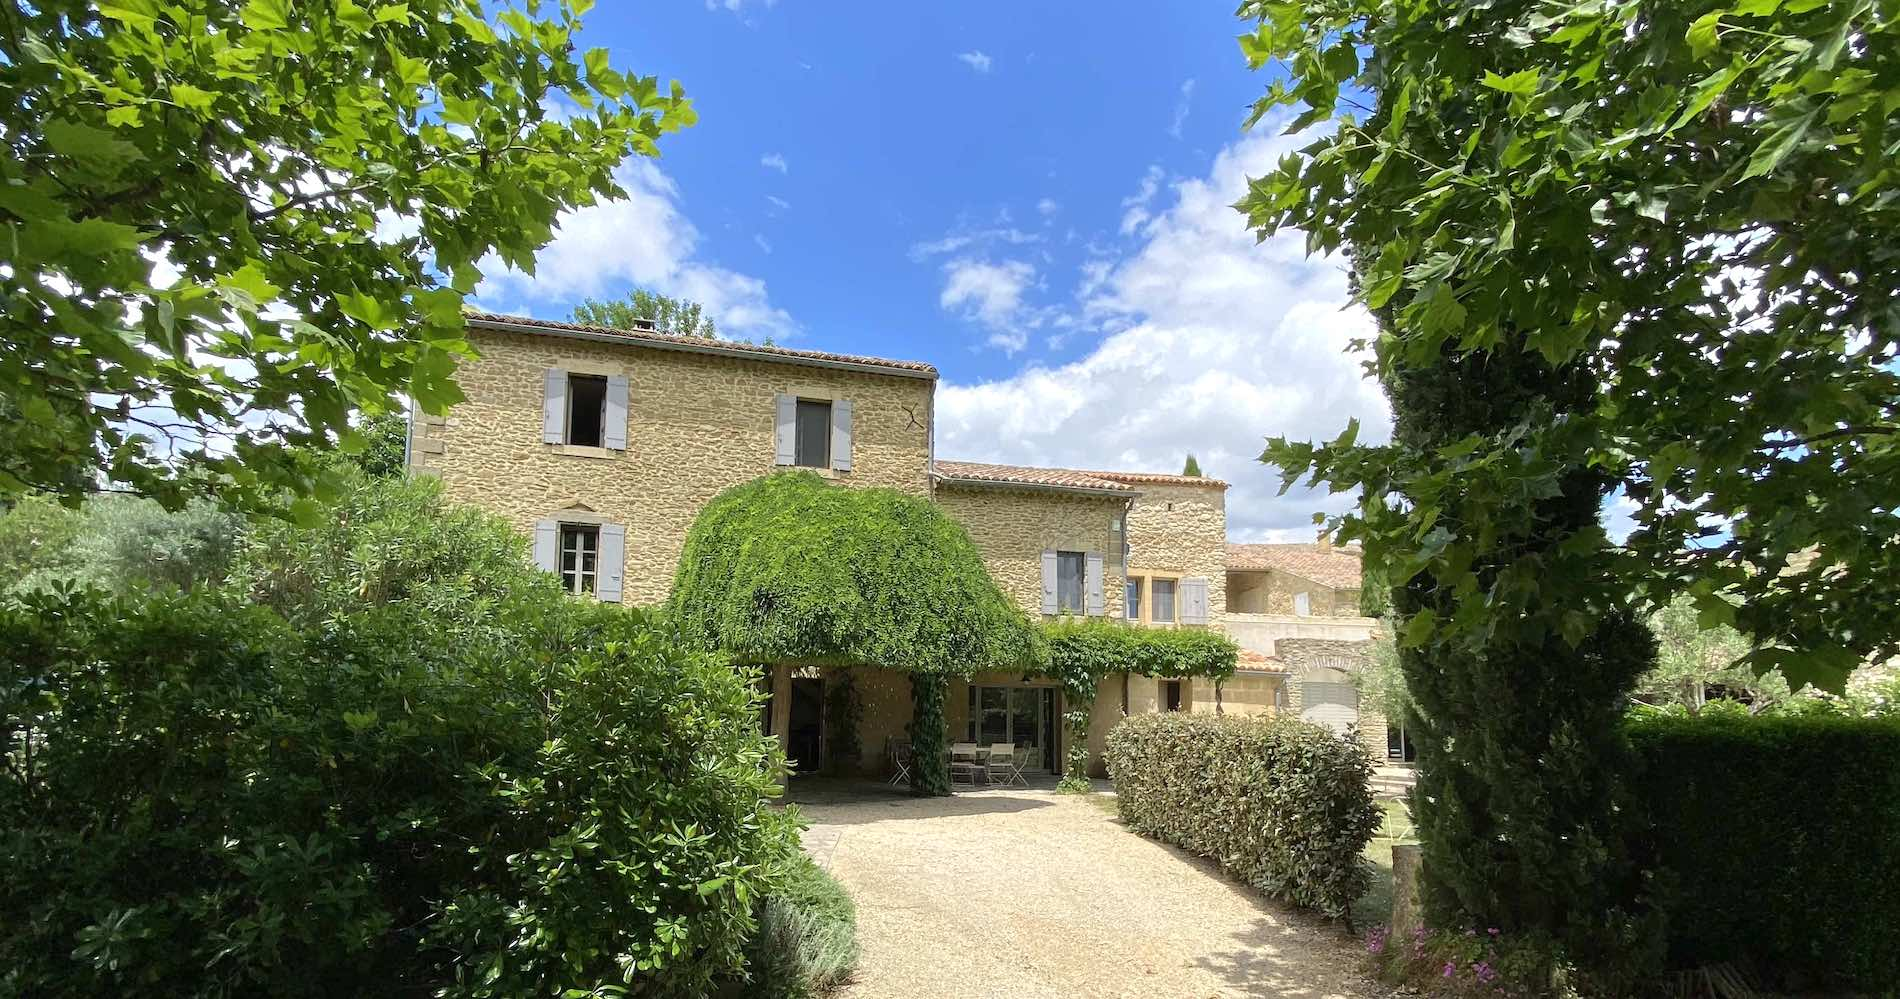 2209 : Uzès region, lovely Mas with large gardens, orchards and large heated pool.